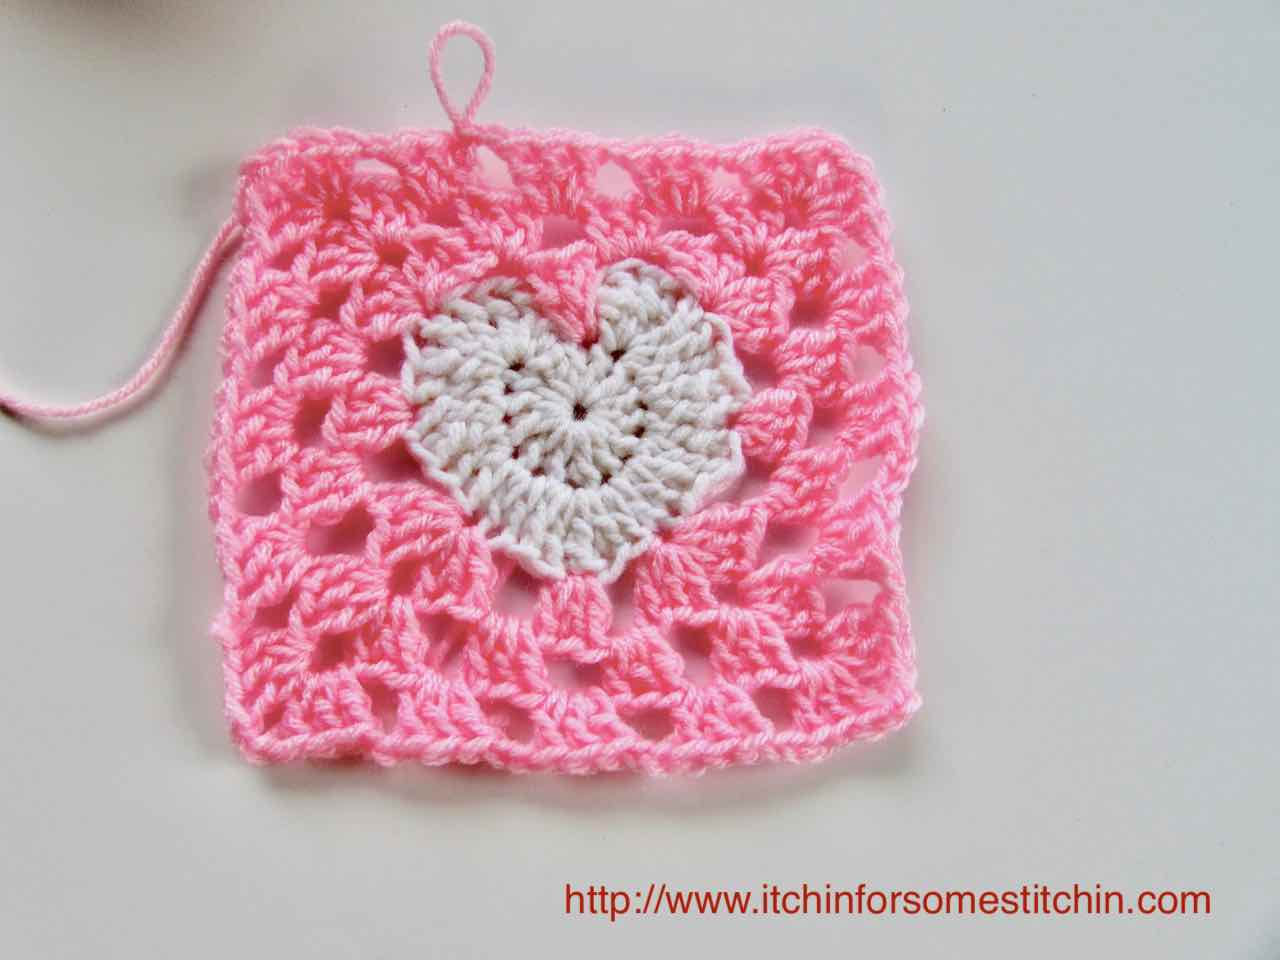 How to crochet a Granny Heart Square tutorial by https://www.itchinforsomestitchin.com